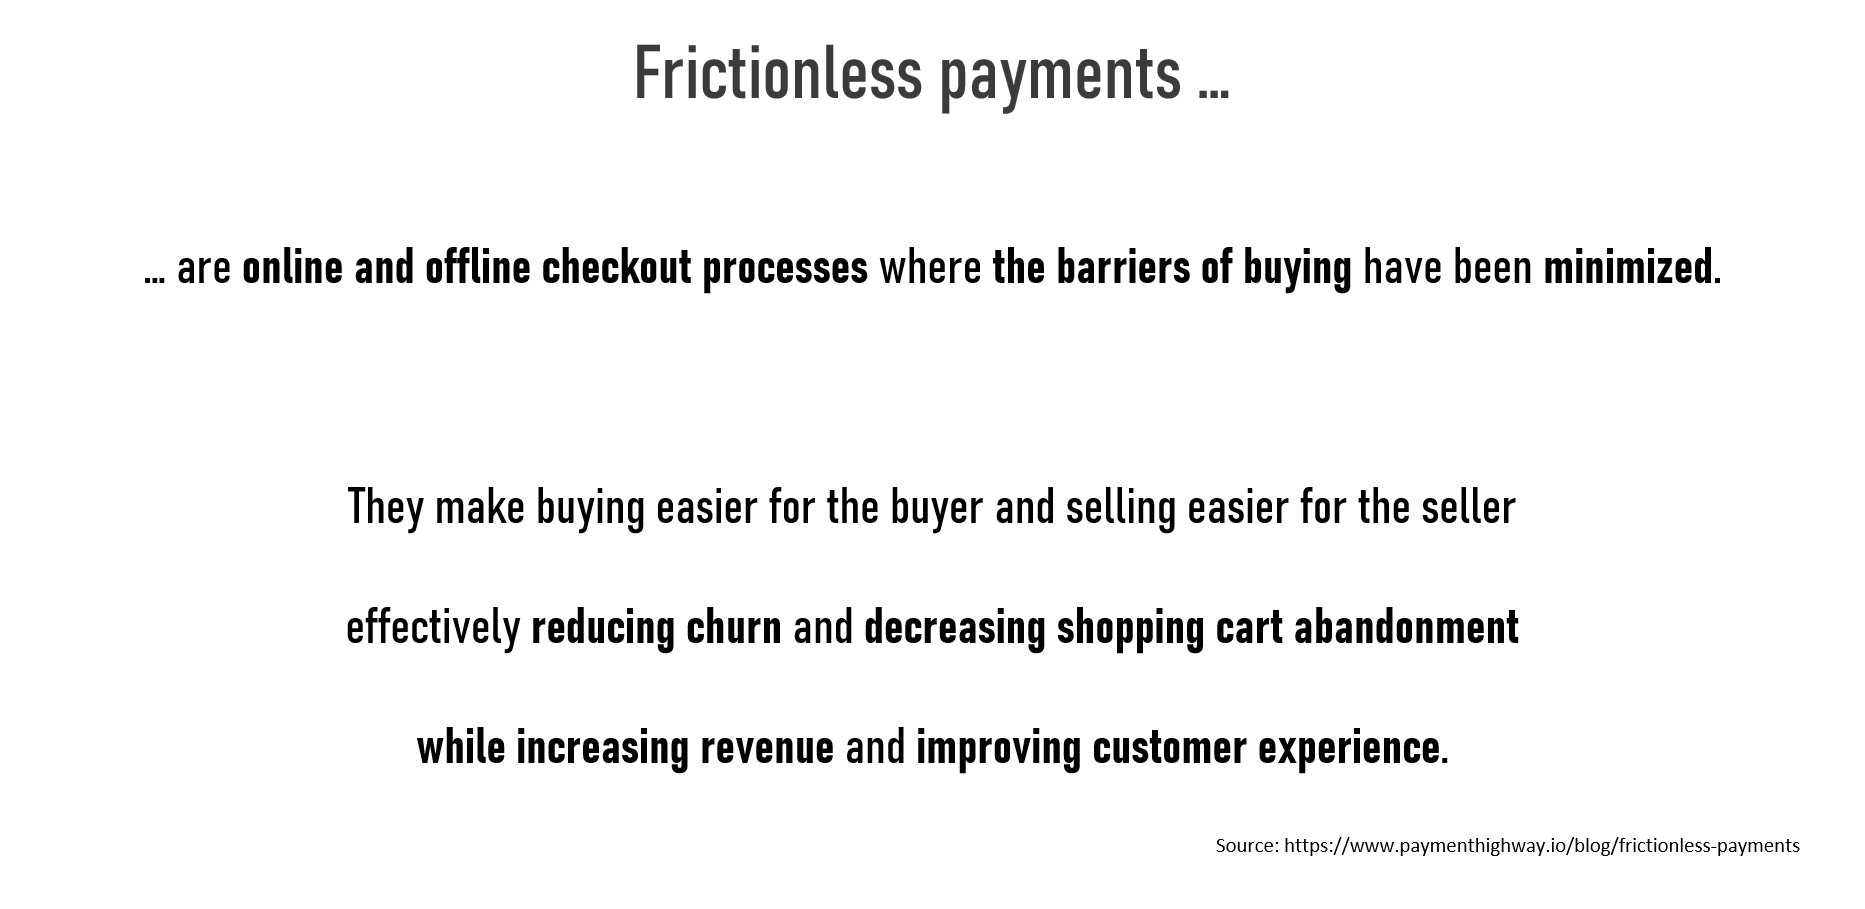 Frictionless payments definition